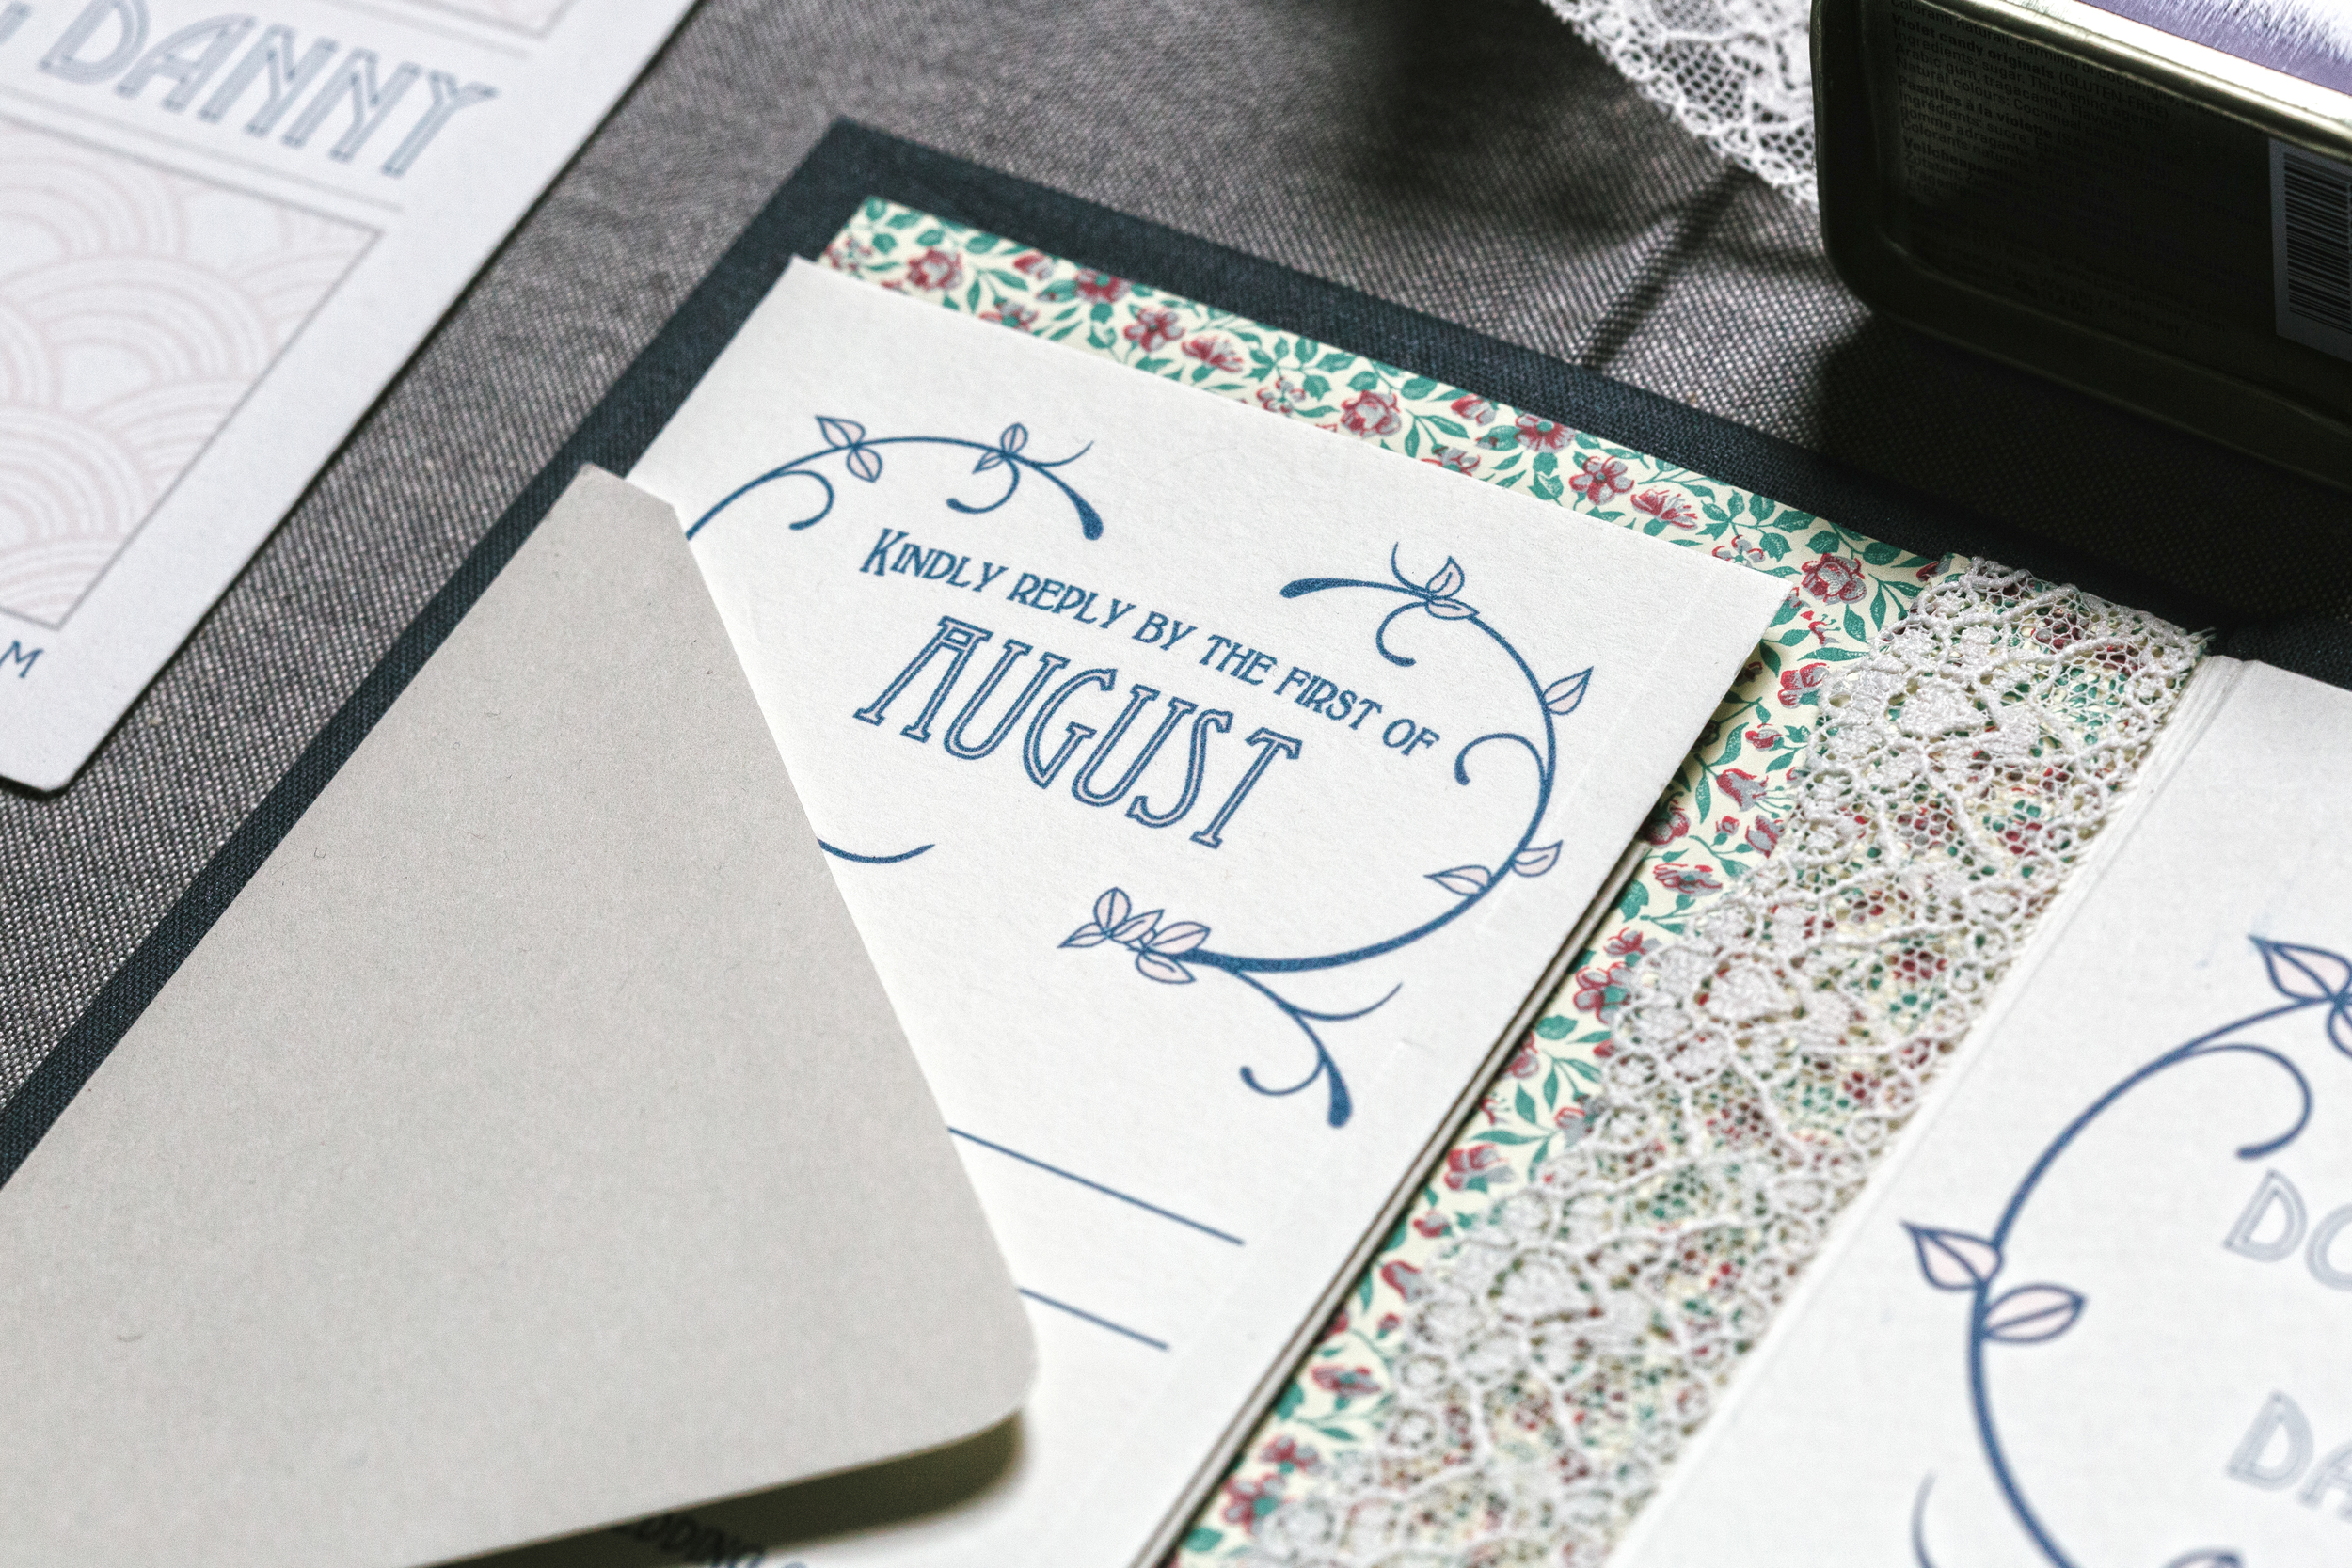 The folder is lined with a vintage flower pattern. A vintagelace sleeve holds the rest of the suite's cards in place.